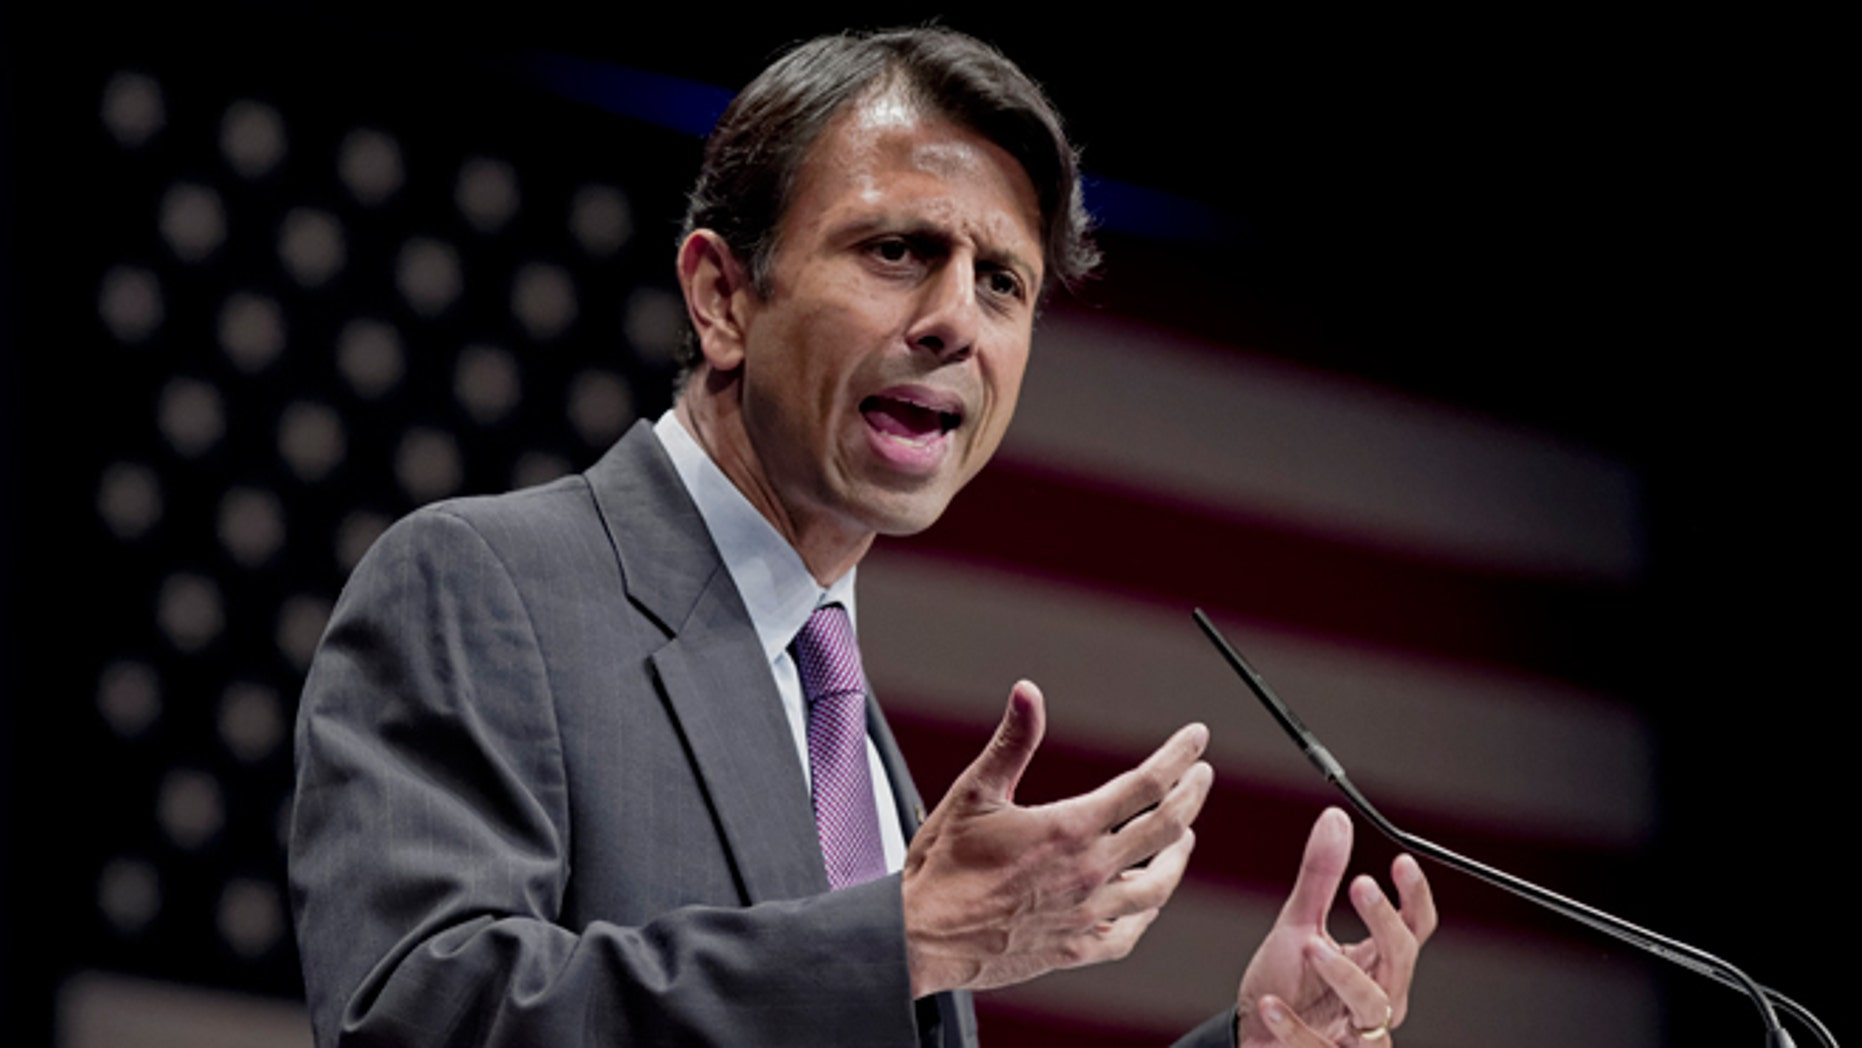 FILE -- Feb. 11, 2012: Republican Gov. Bobby Jindal of Louisiana addresses activists from America's political right at the Conservative Political Action Conference (CPAC) in Washington.